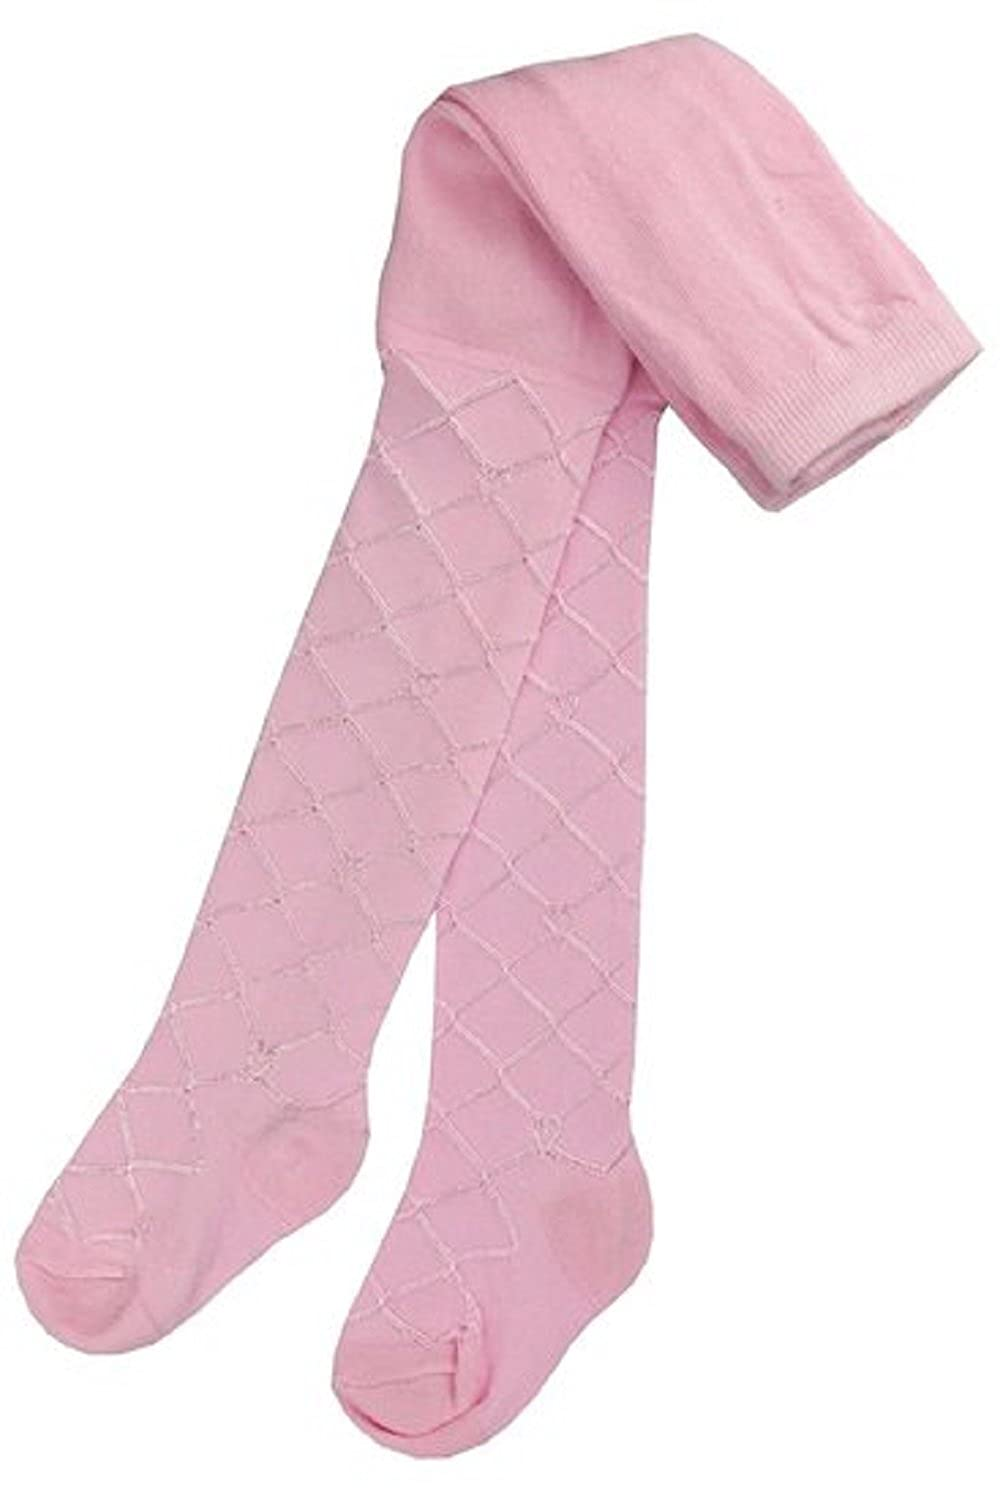 2 x Baby Tights Diamond Silky Lattice Party Christening Style 0-24 Months in Pink, White, Cream